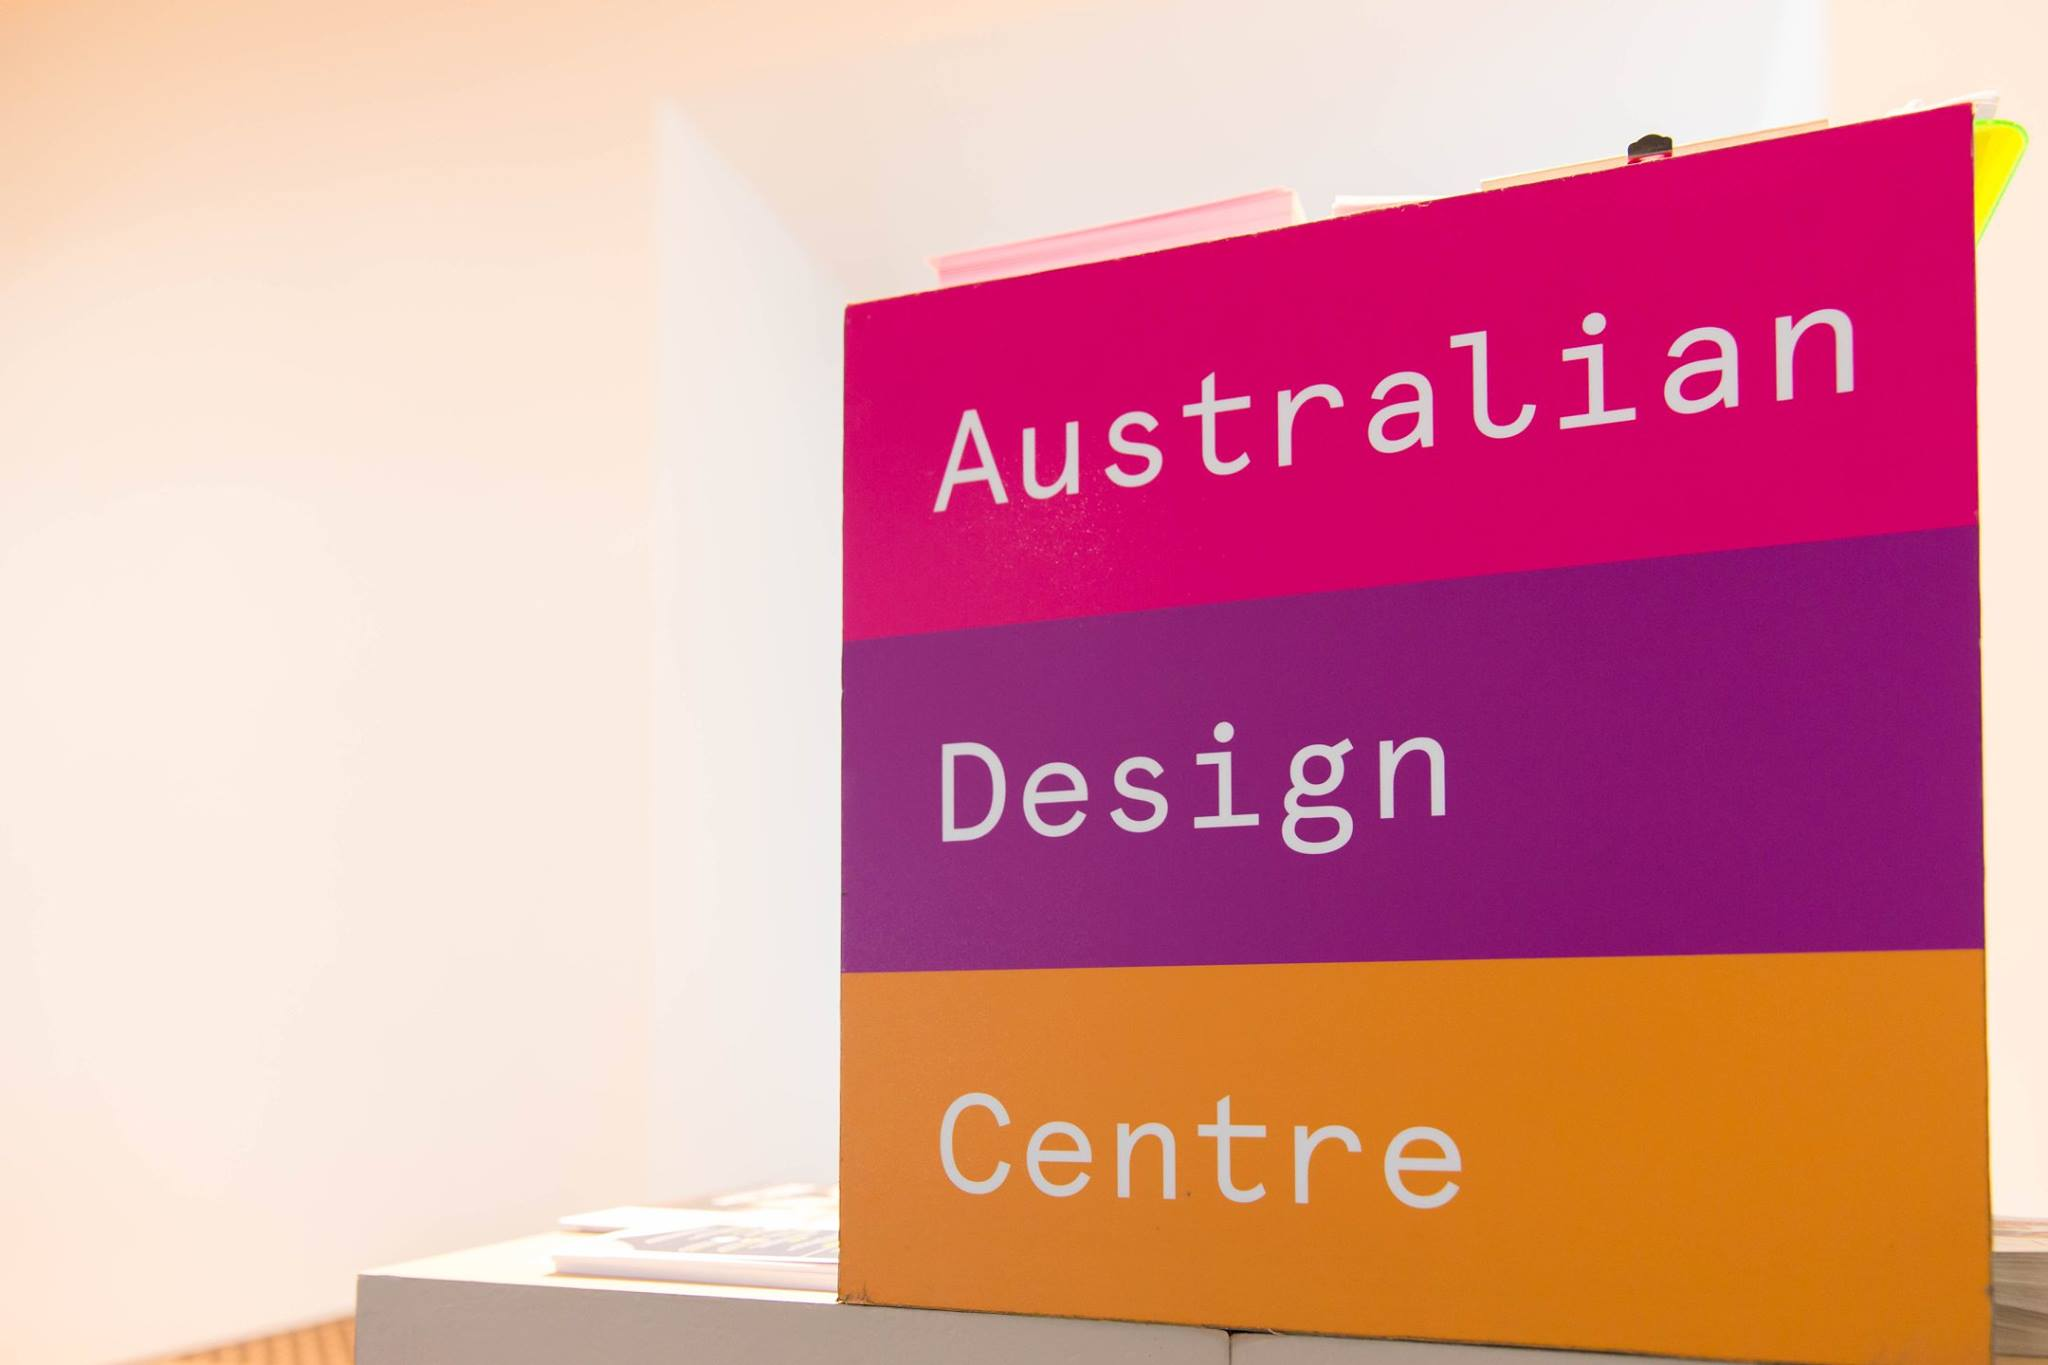 Thank you to our amazing venue partners, the Australian Design Centre, we have had the best fun hosting our masterclass series and Creative Mama Workshop in your magic light filled creative space.